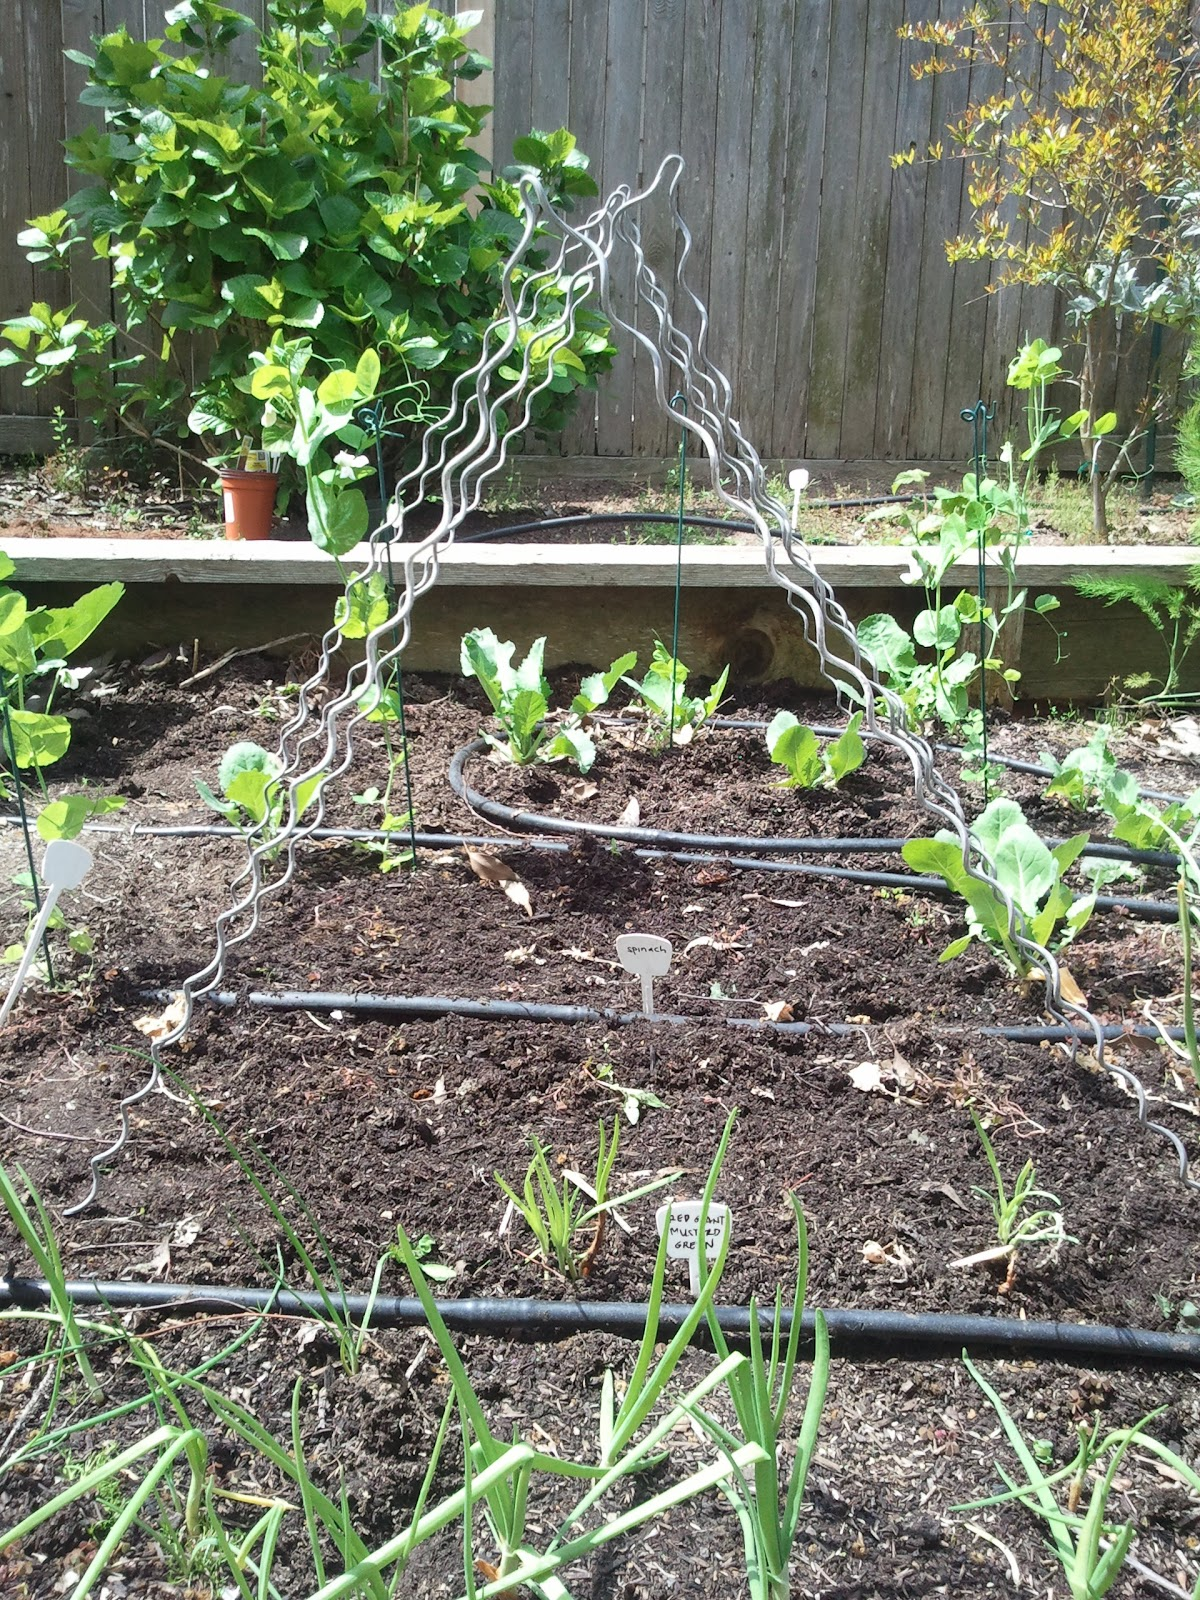 Diy plant supports - Photo Of Fence Stays Converted To Plant Supports 2012